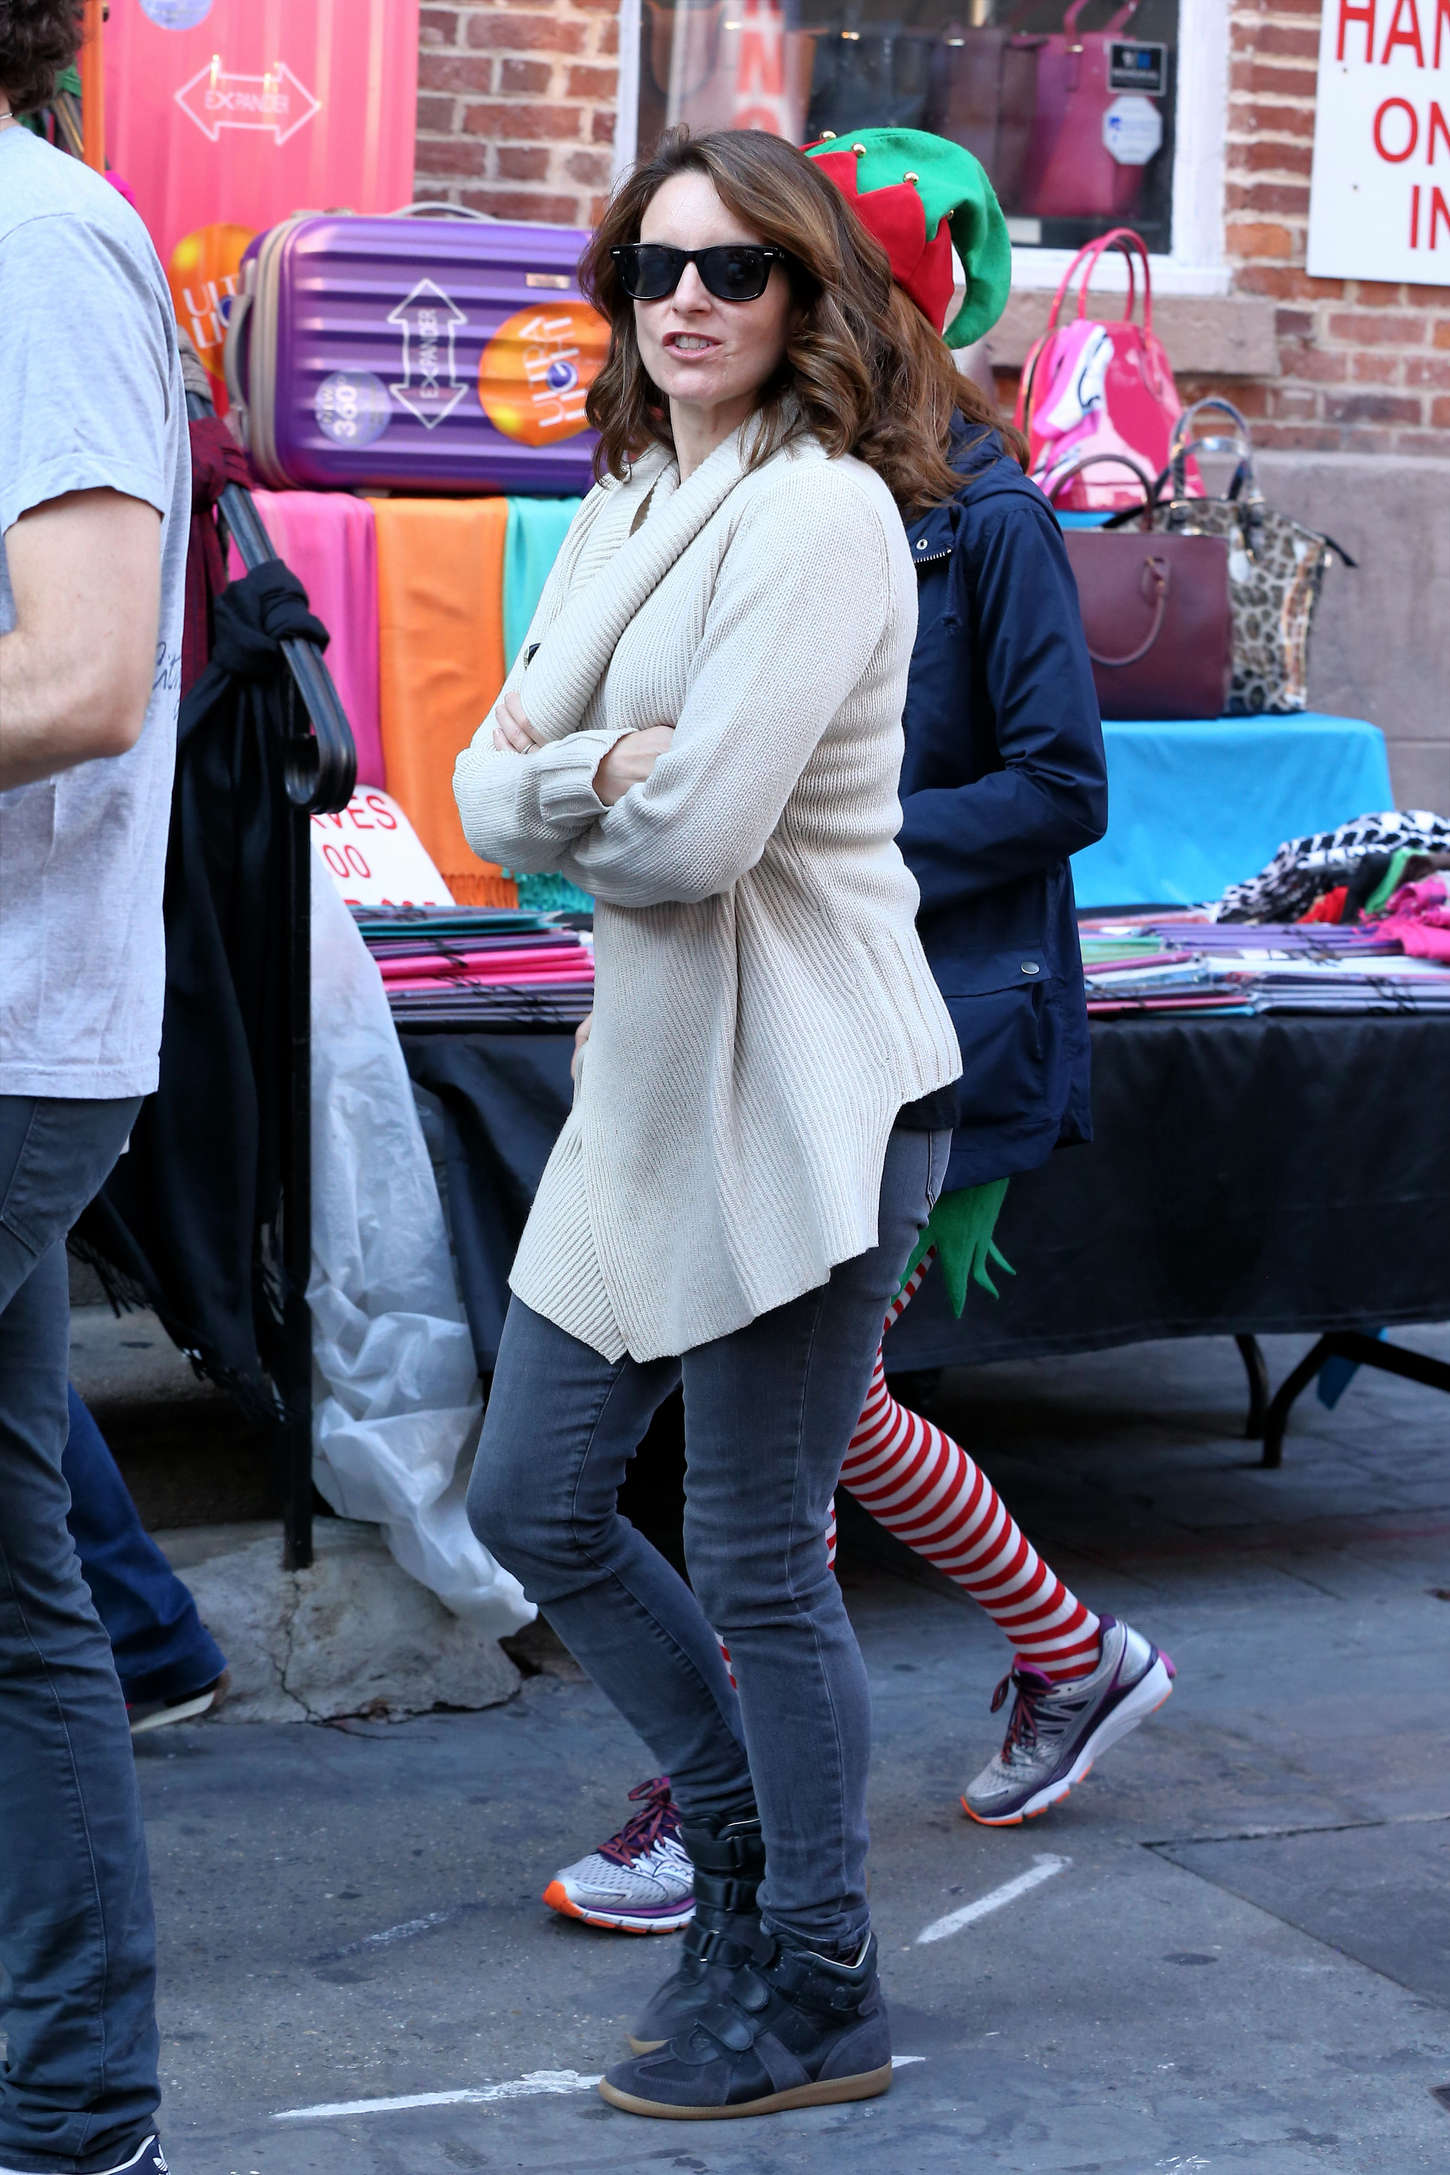 Ellie Kemper and Tina Fey on Unbreakable Kimmy Schmidt set in New York